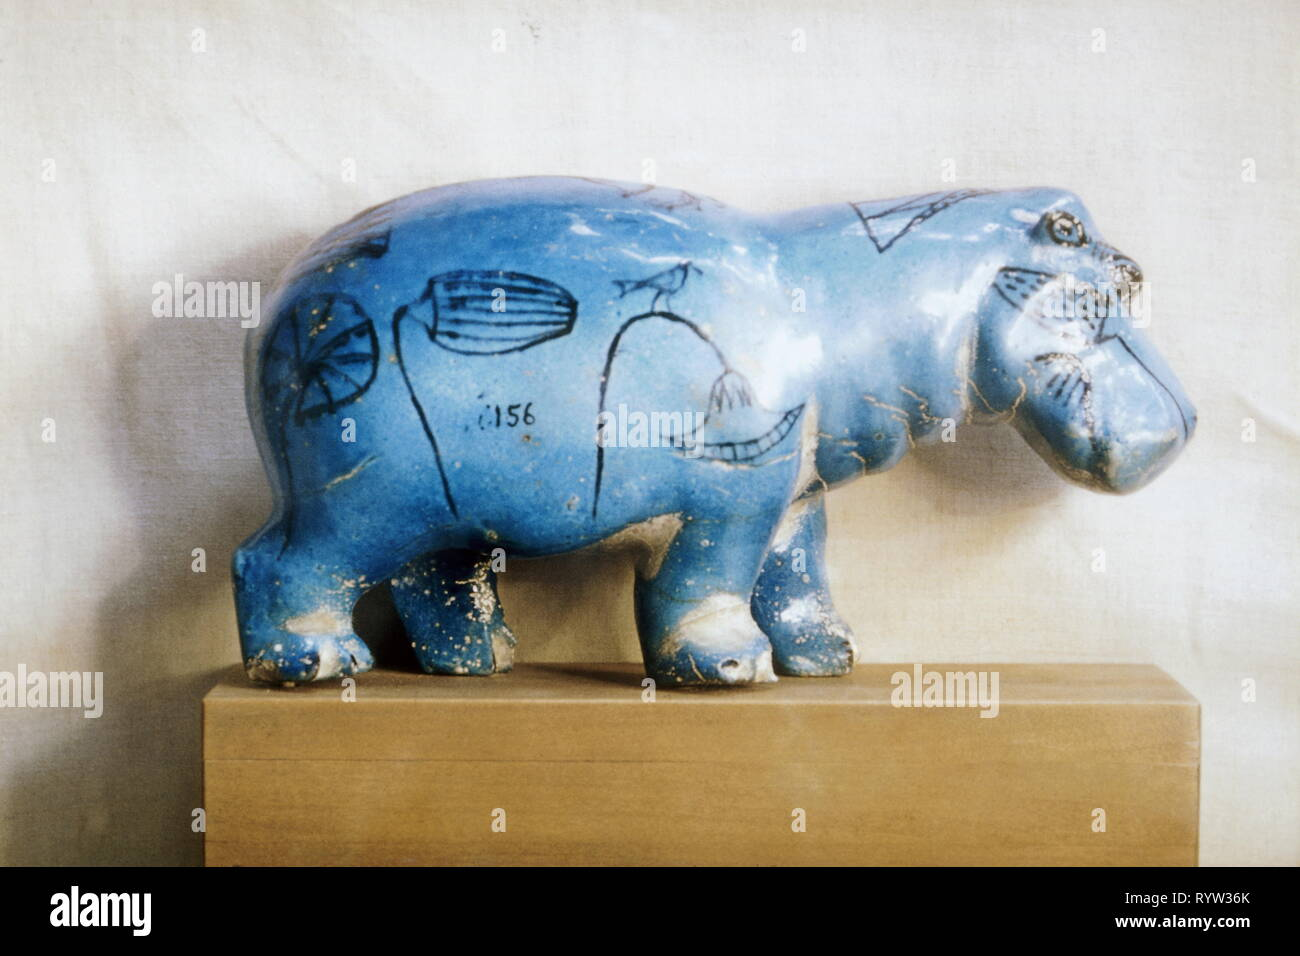 geography / travel, Egypt, animals, hippopotamus, blue faience, Thebes, 11th Dynasty, circa 2100 BC, engraved plant, Egyptian museum Cairo, Additional-Rights-Clearance-Info-Not-Available - Stock Image